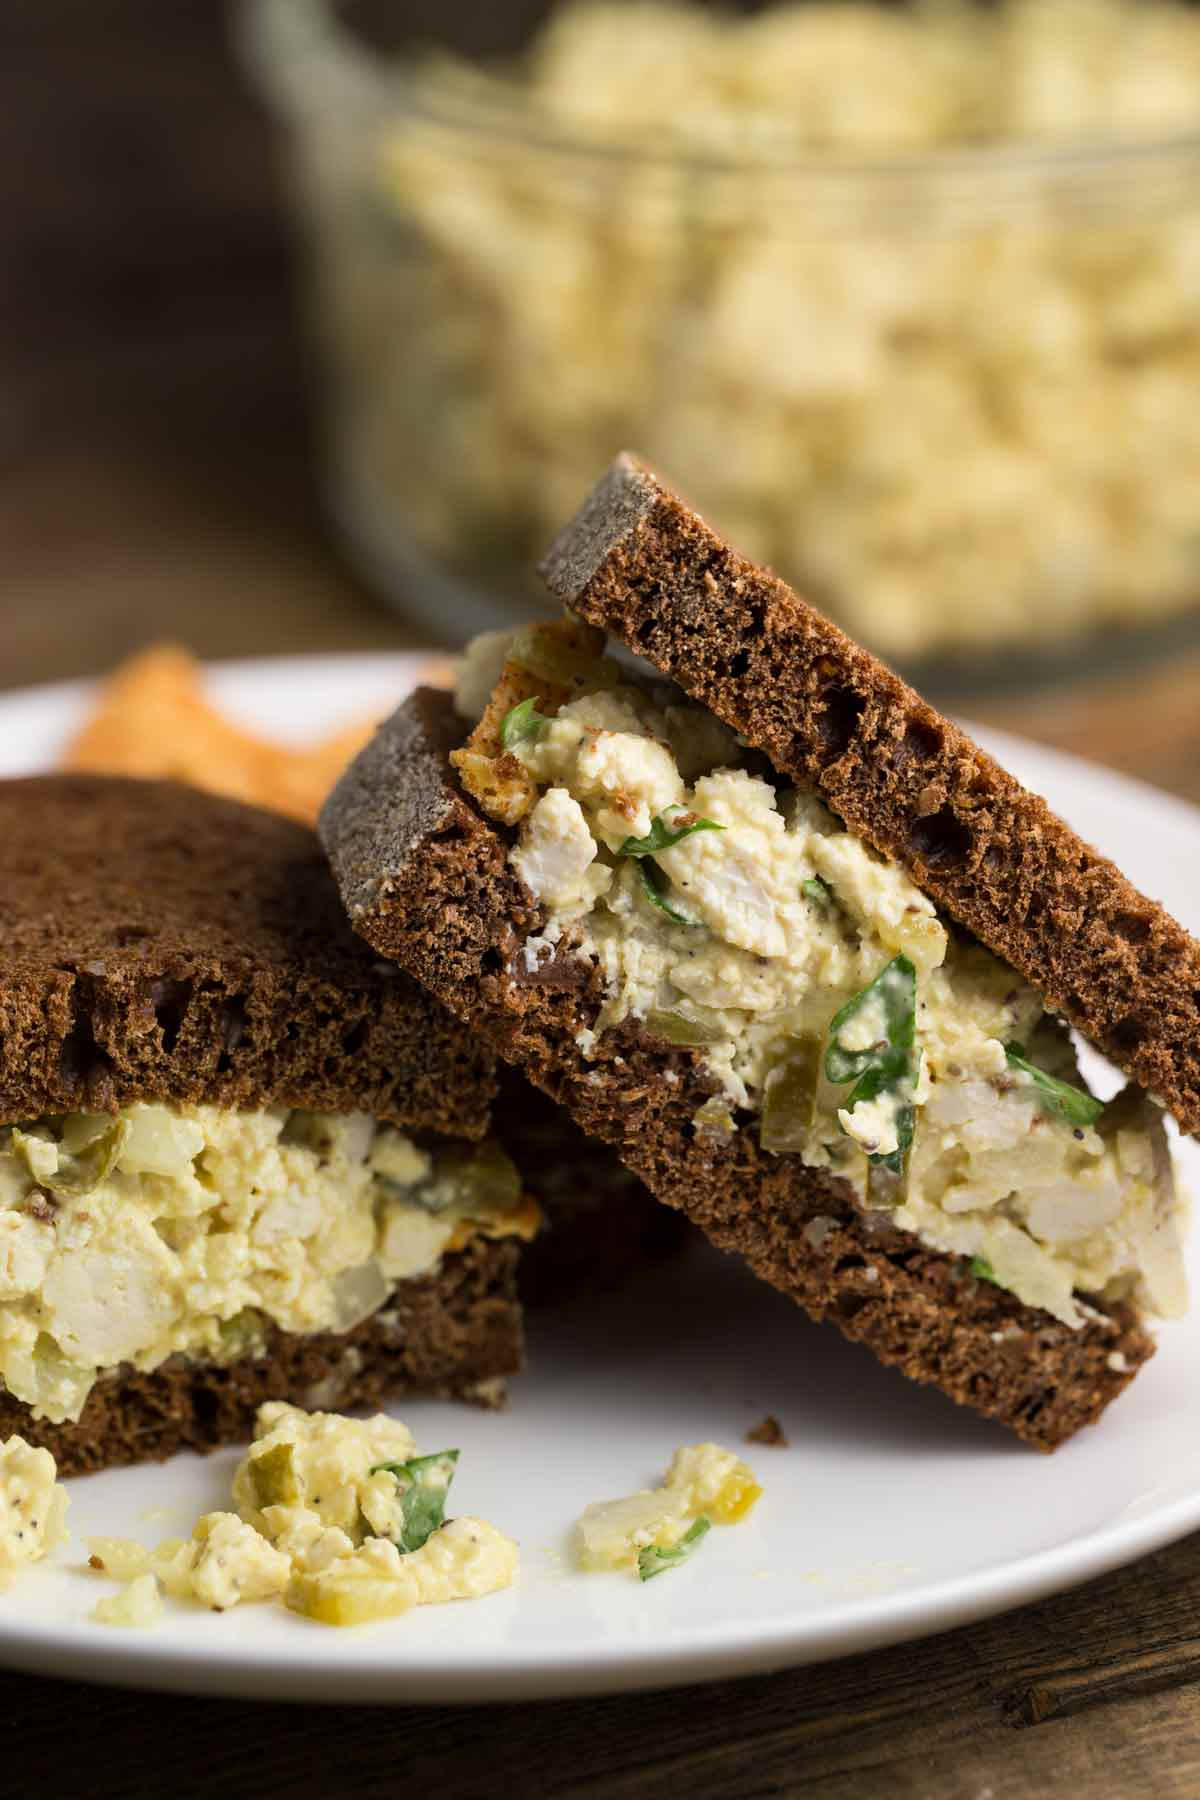 A vegan egg salad sandwich on pumpernickel bread, with chips on the side.